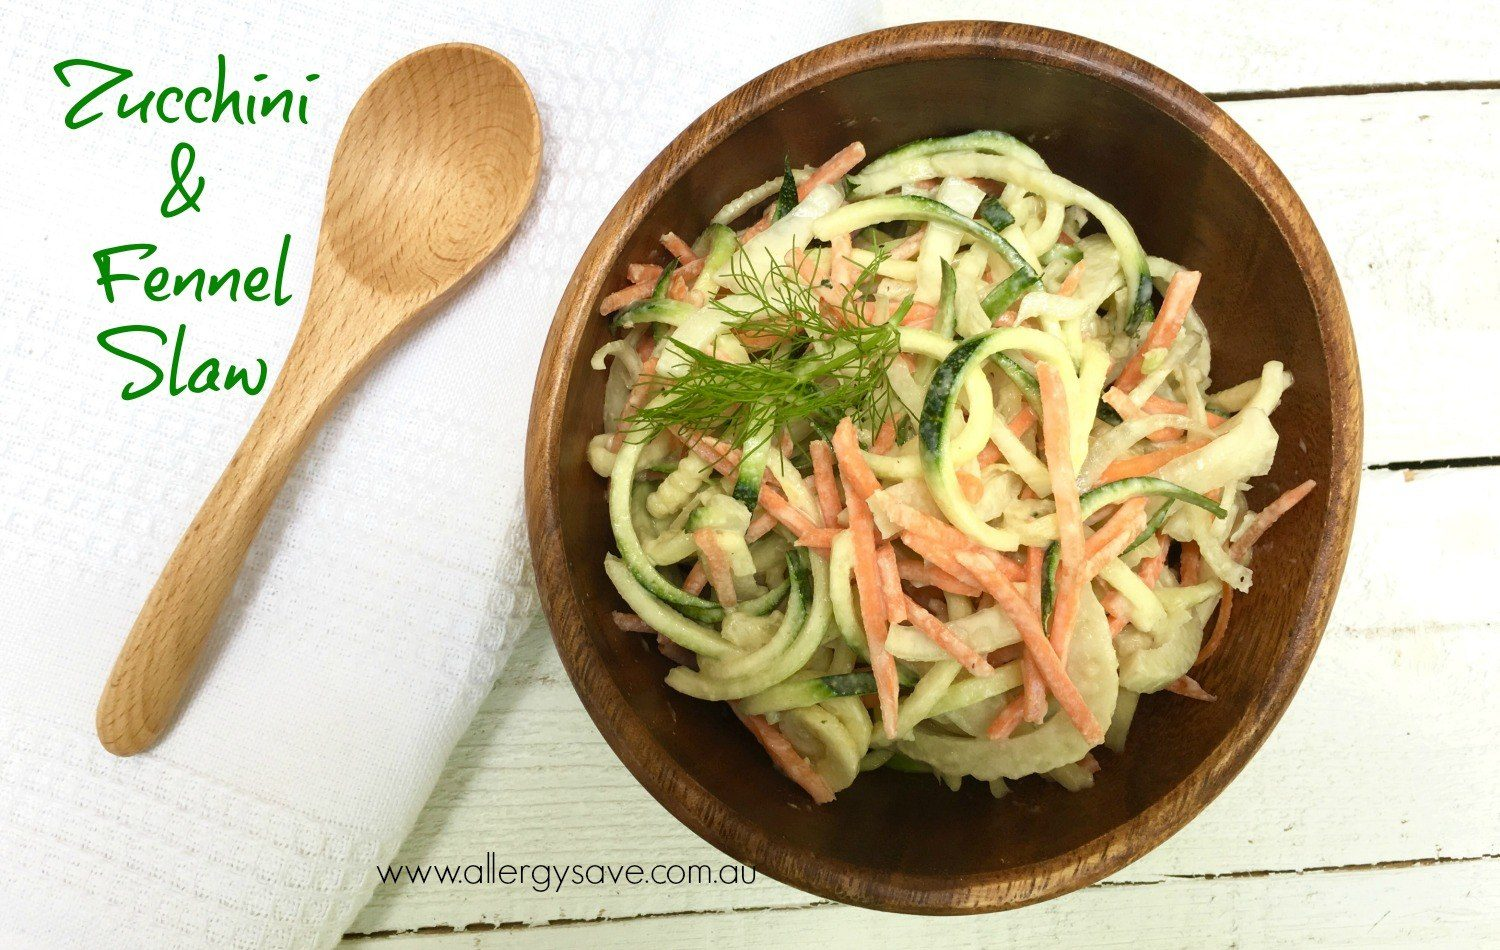 Zucchini and Fennel Slaw